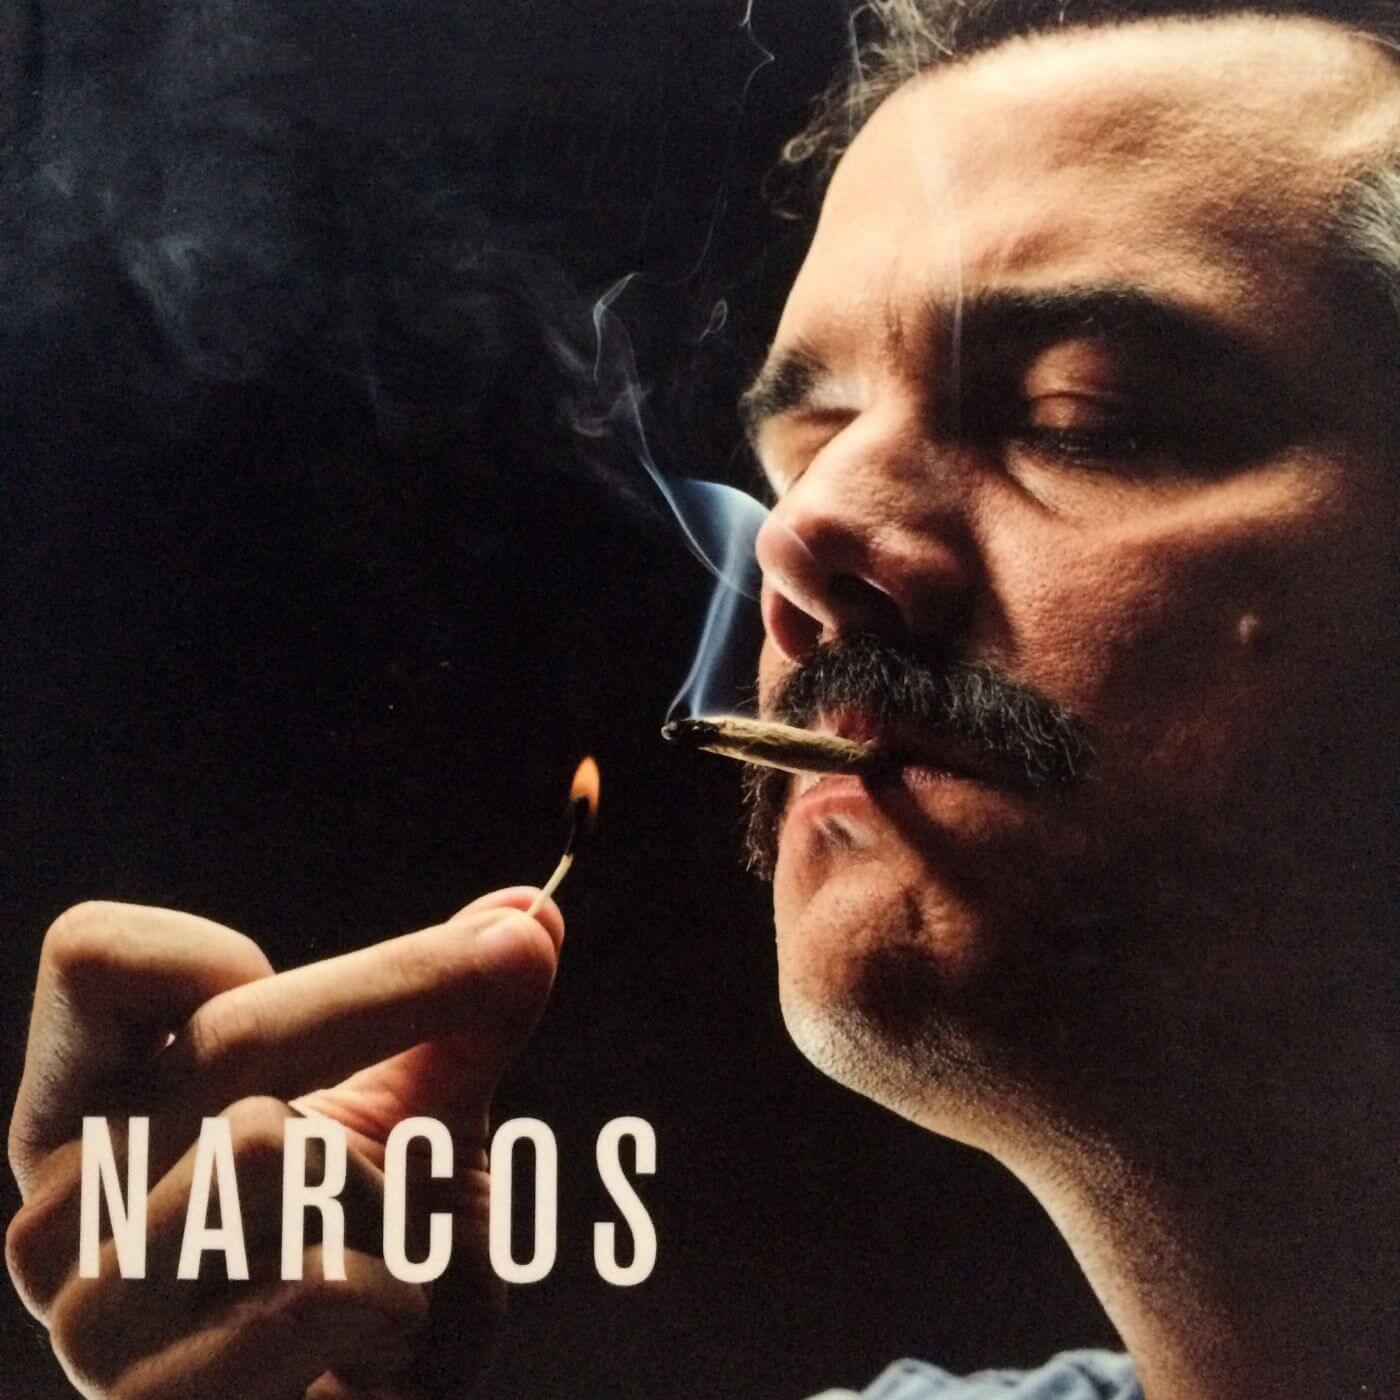 Narcos - Pablo Escobar - Wagner Moura - Netflix TV Show Poster Art - Life Size Posters